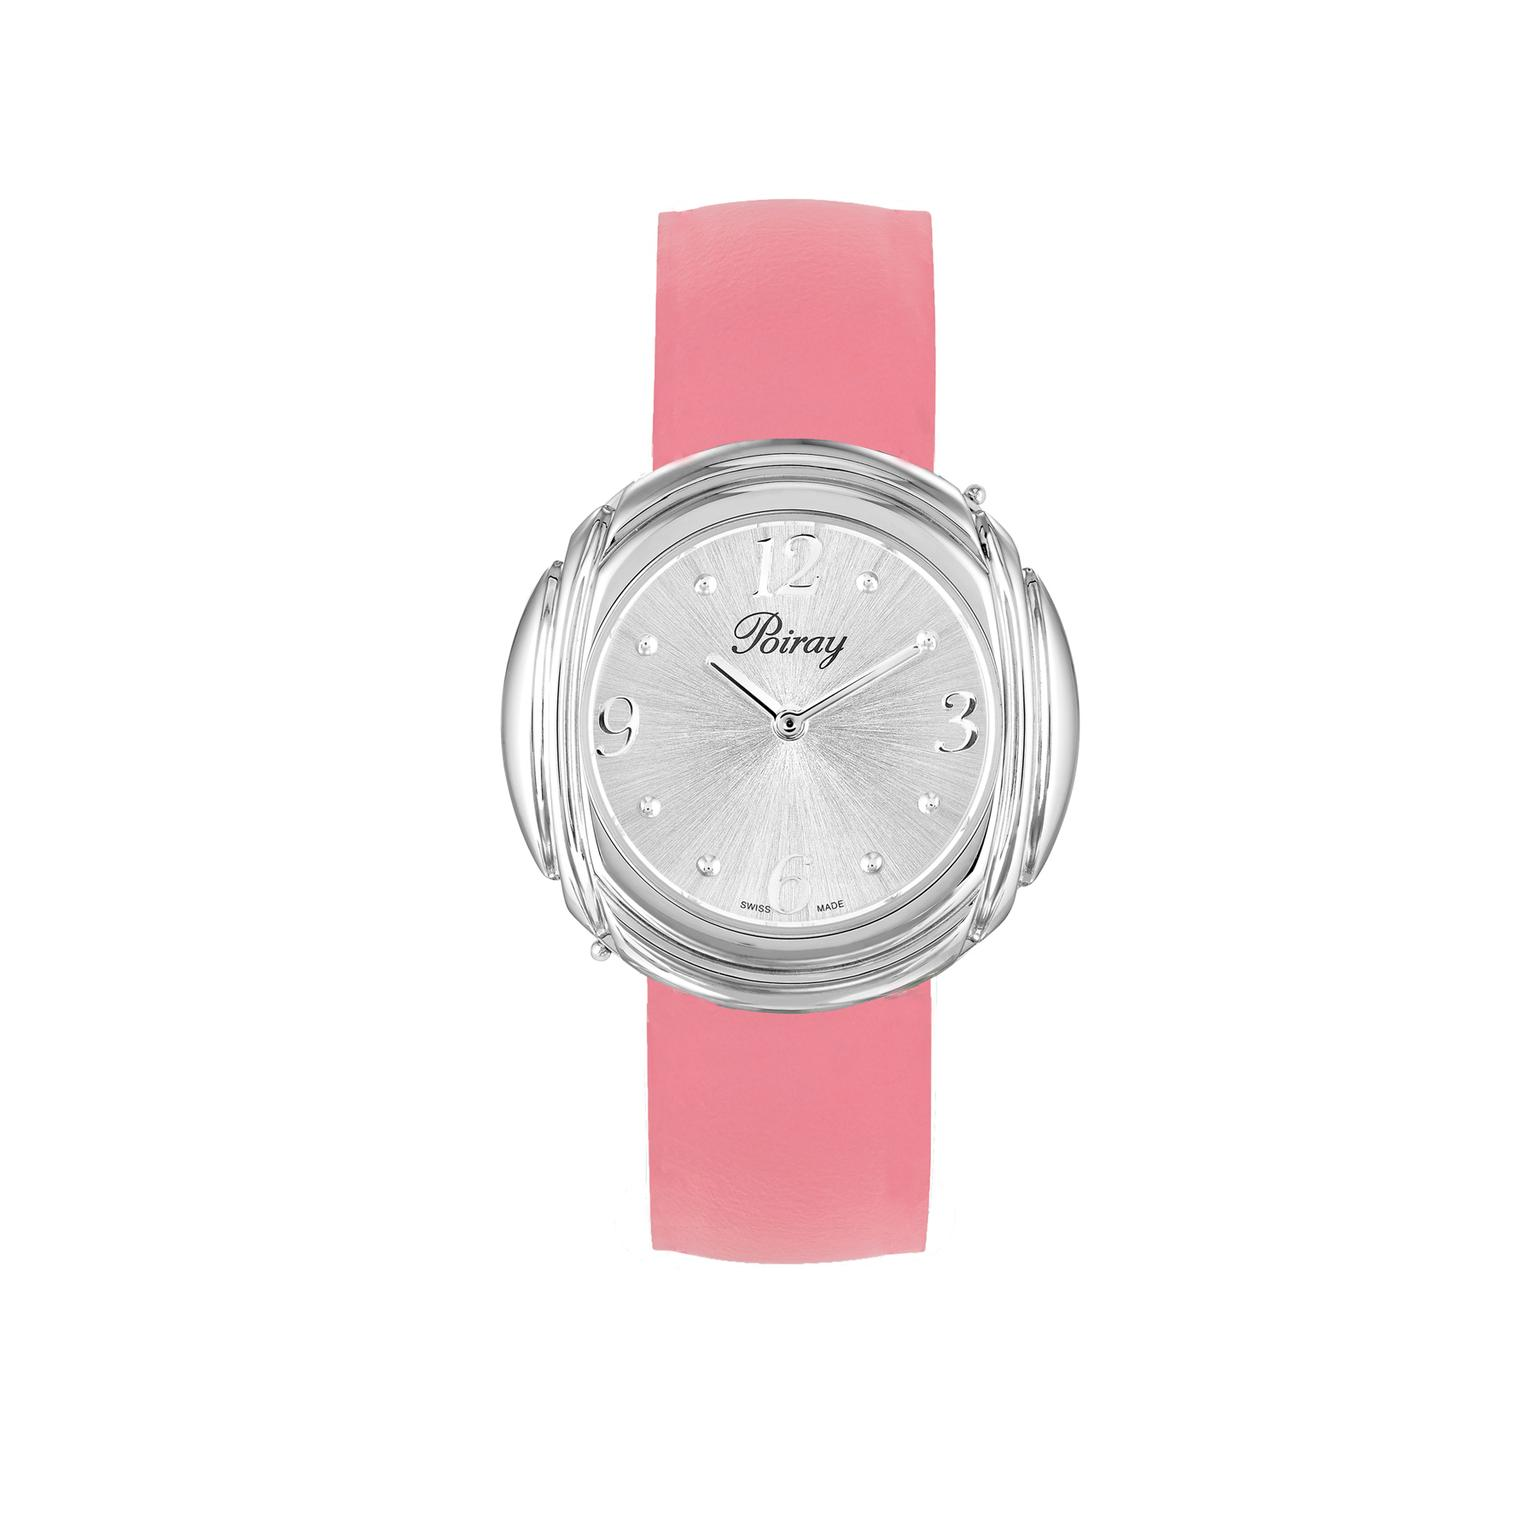 Poiray Ma Préférée steel watch with a special edition Valentine's Day strap